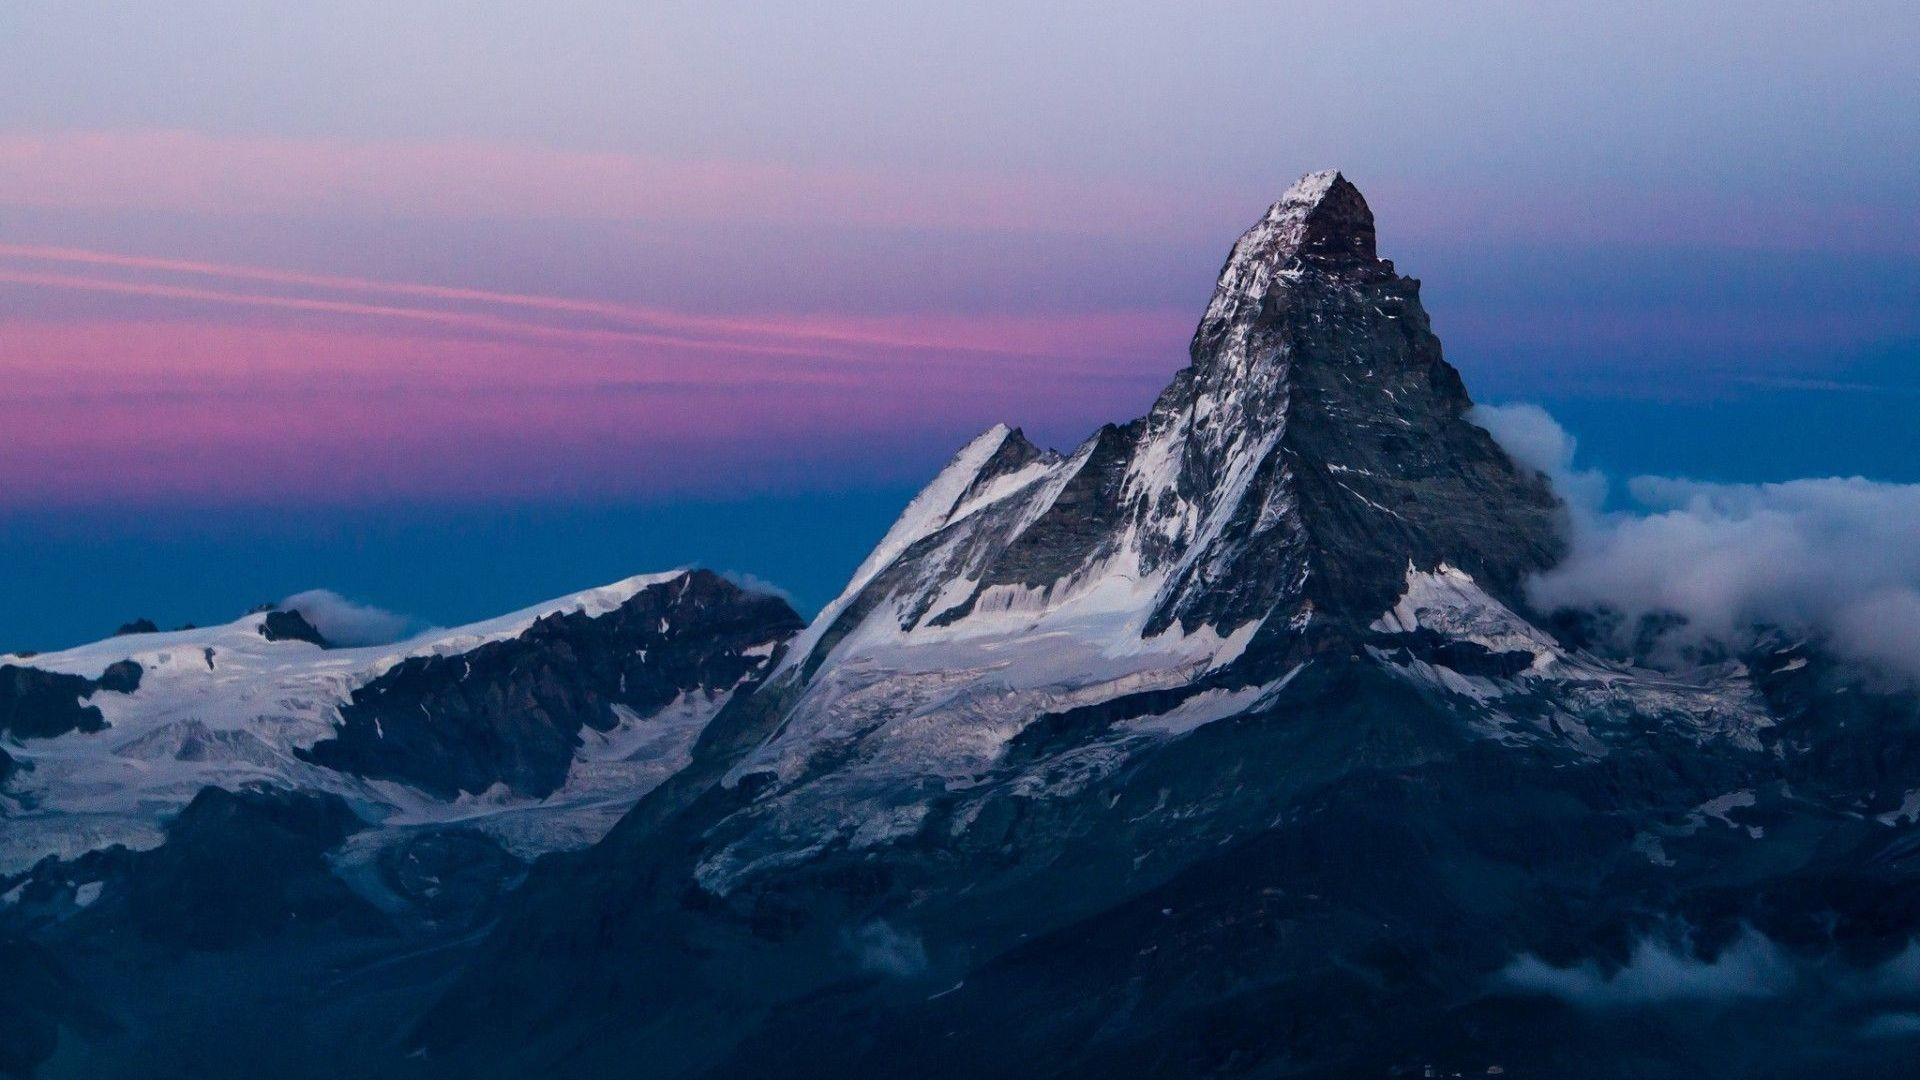 Best Wallpaper For Mac (68+ Images